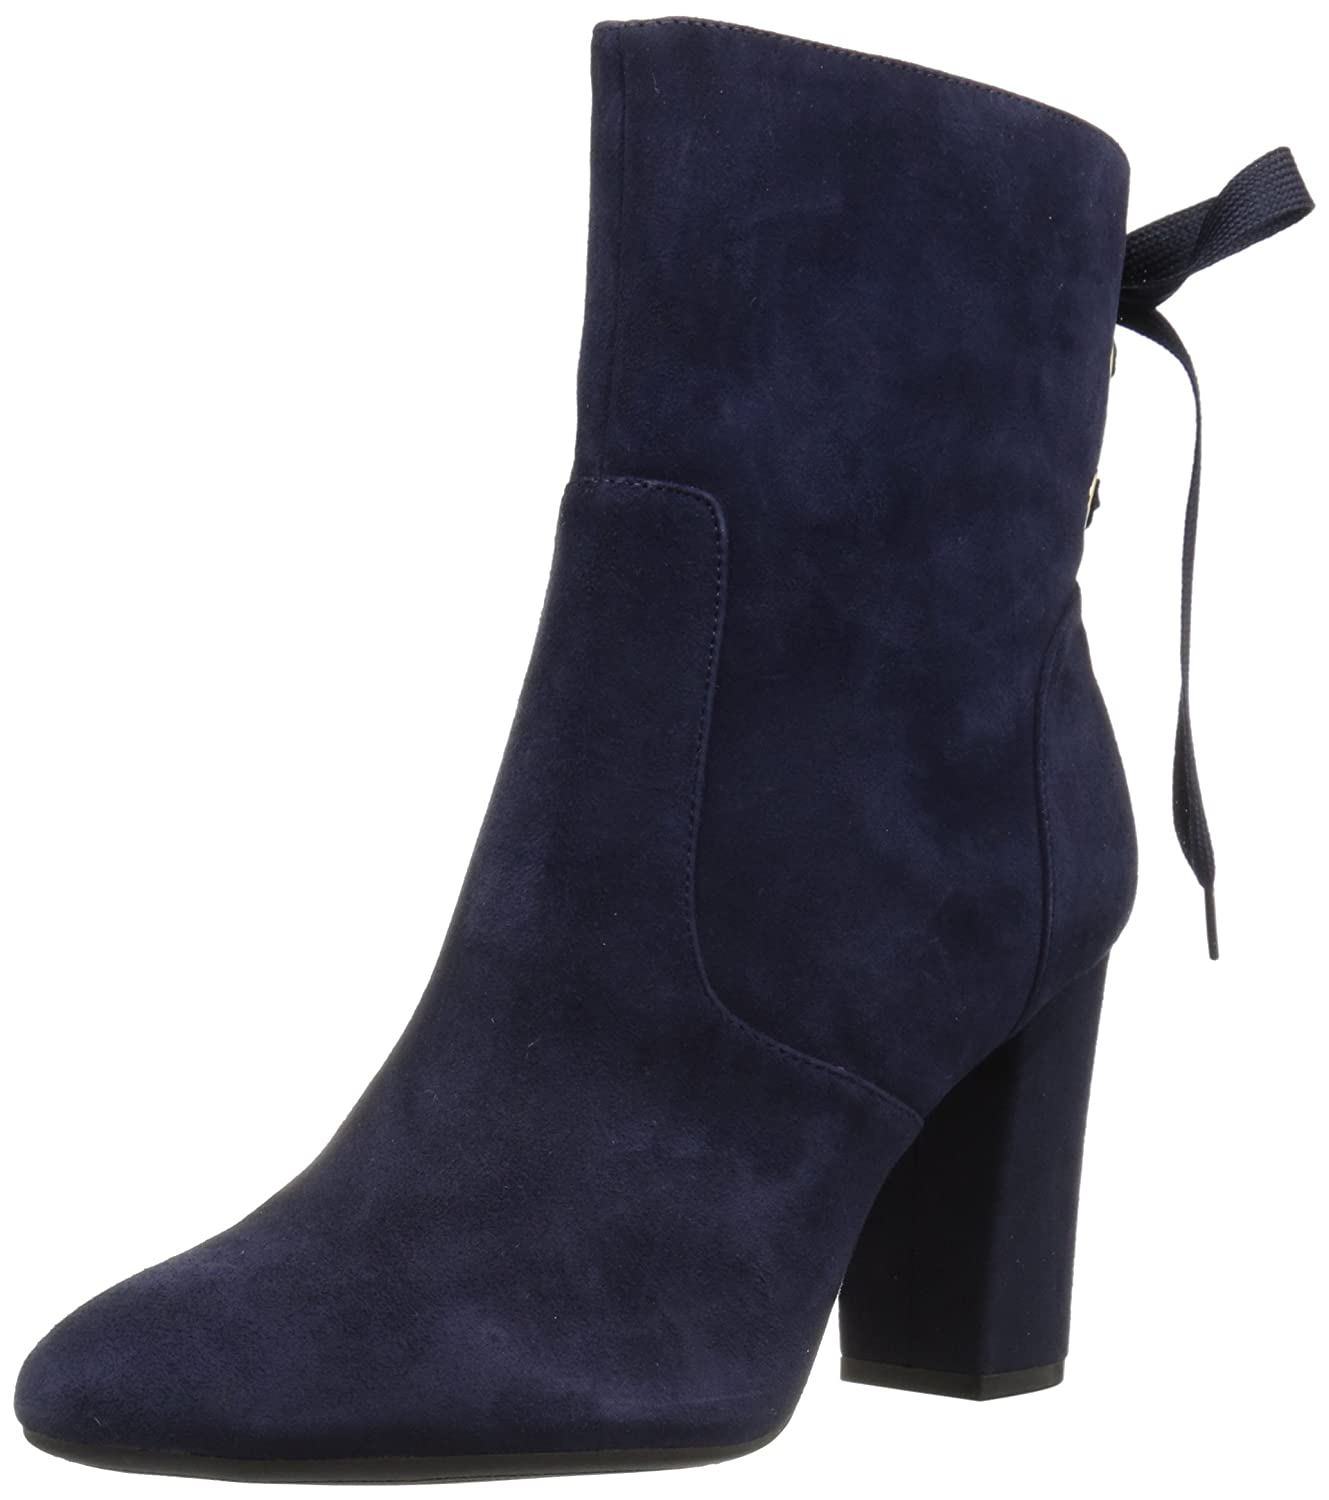 Tommy Hilfiger Women's Divah Fashion Boot B06XV8P3P9 6.5 B(M) US|Navy